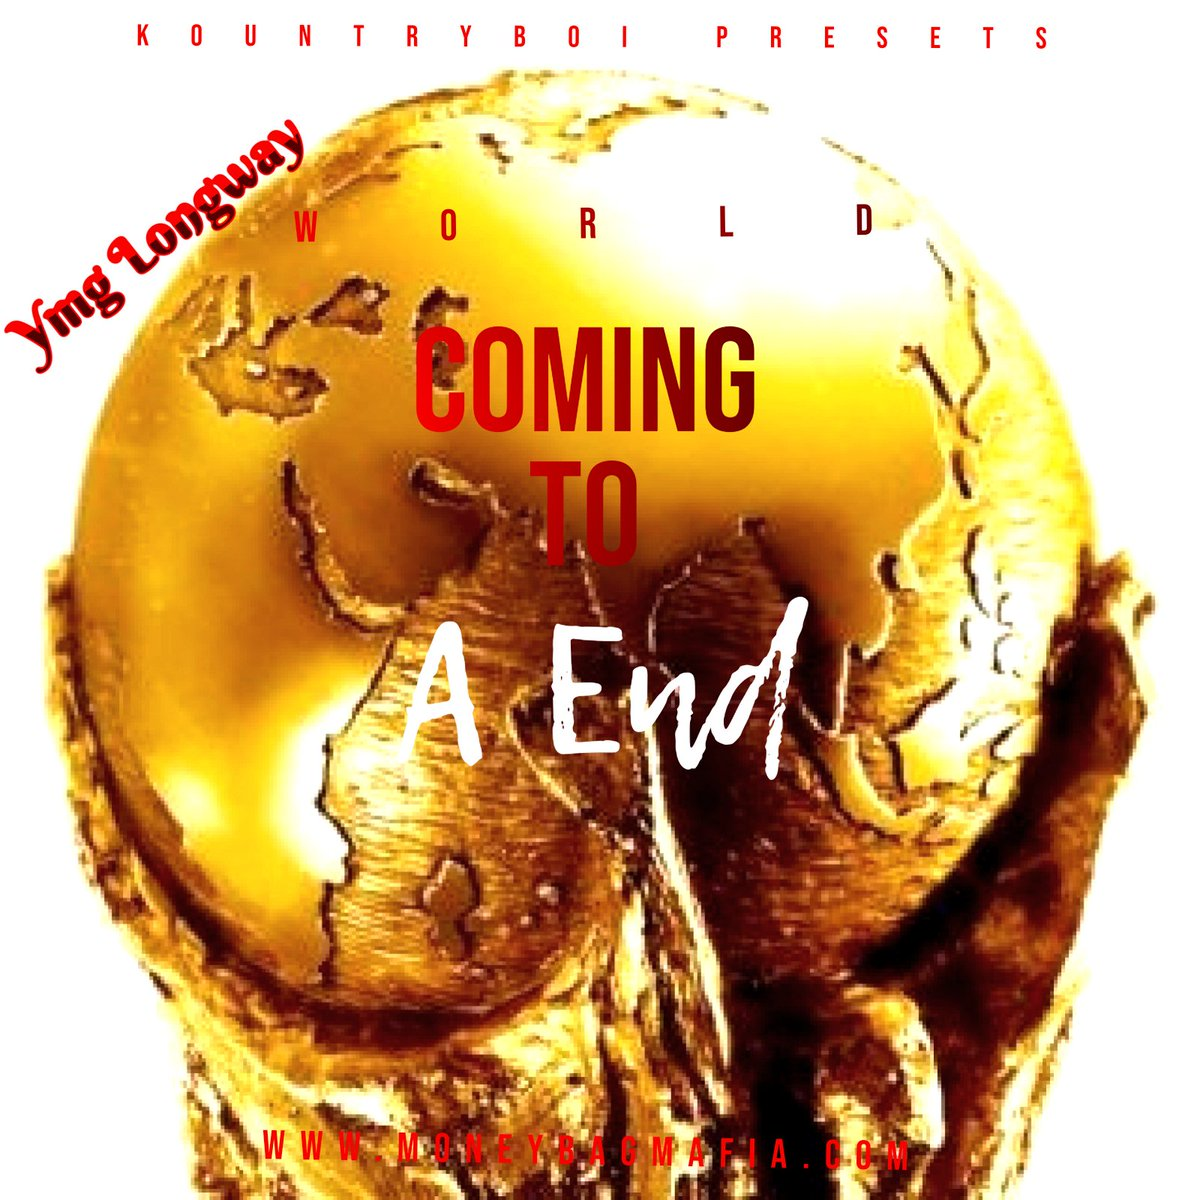 Another Single I'm Working On World Comin To A End Songle Cover<br>http://pic.twitter.com/mYEB84kE3o